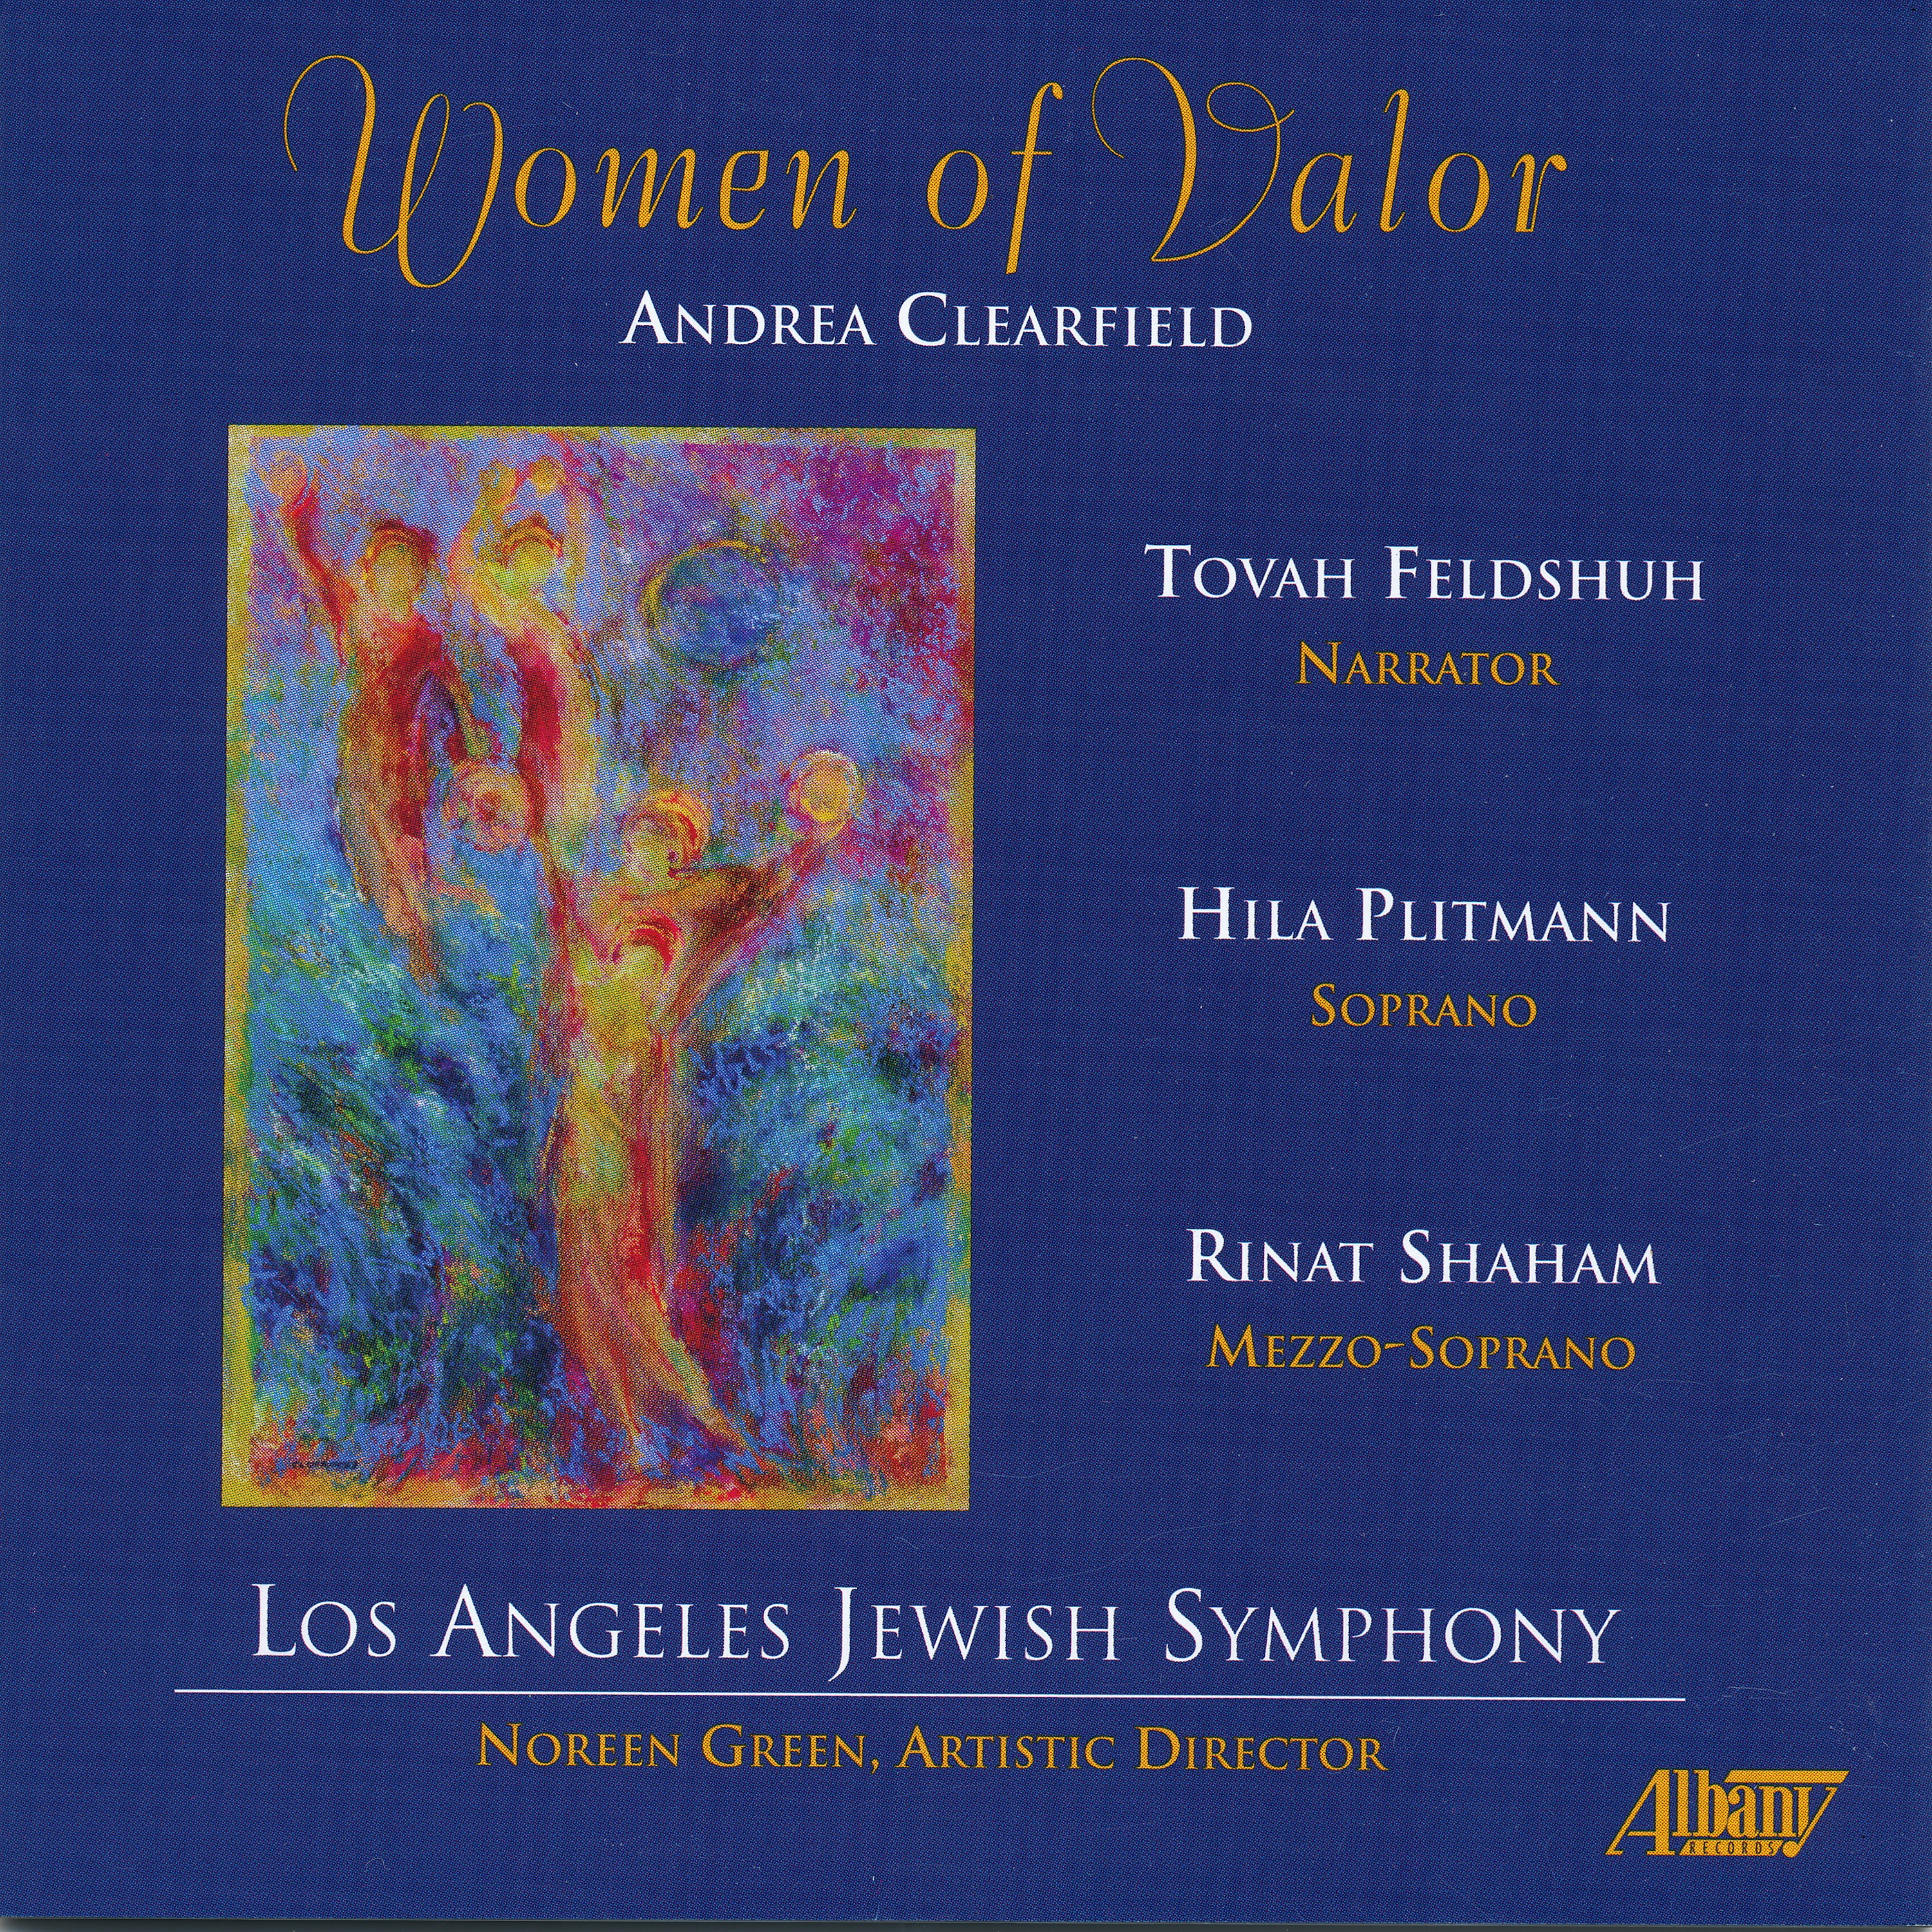 Oratorio by American composer Andrea Clearfield Classical Albany Records